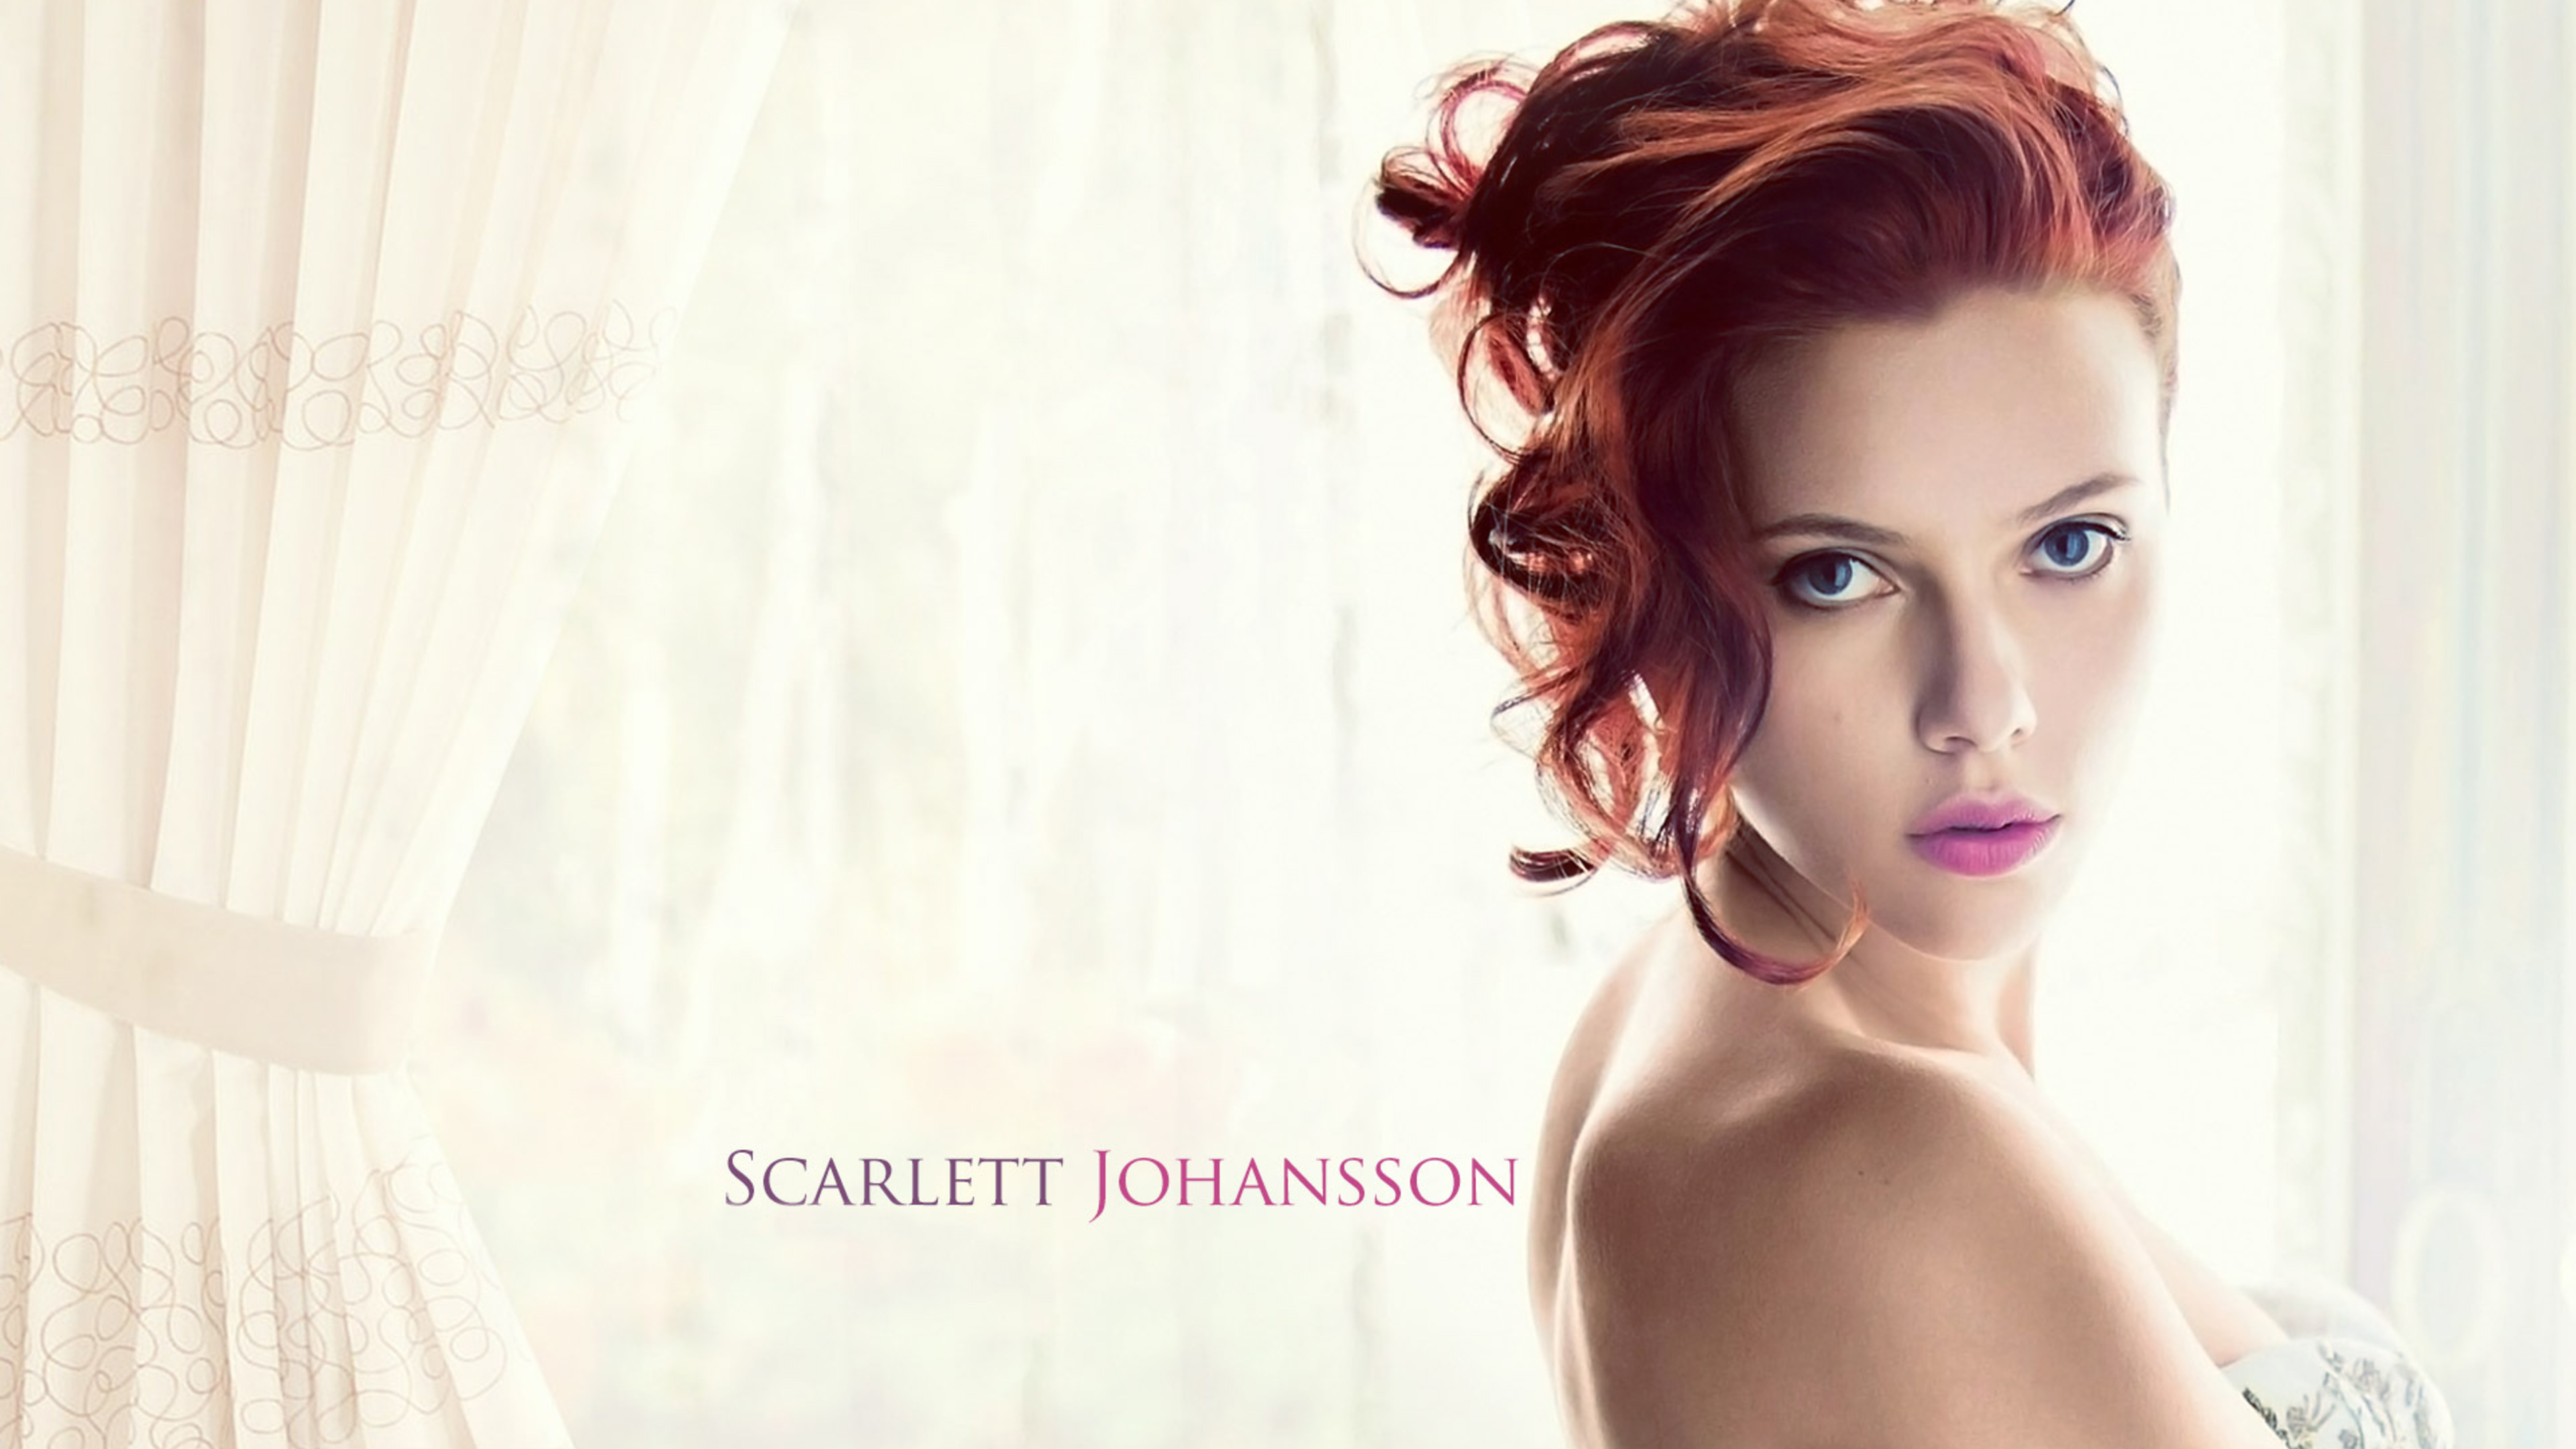 scarlett johansson latest 1536855904 - Scarlett Johansson Latest - scarlett johansson wallpapers, movies wallpapers, lucy wallpapers, girls wallpapers, celebrities wallpapers